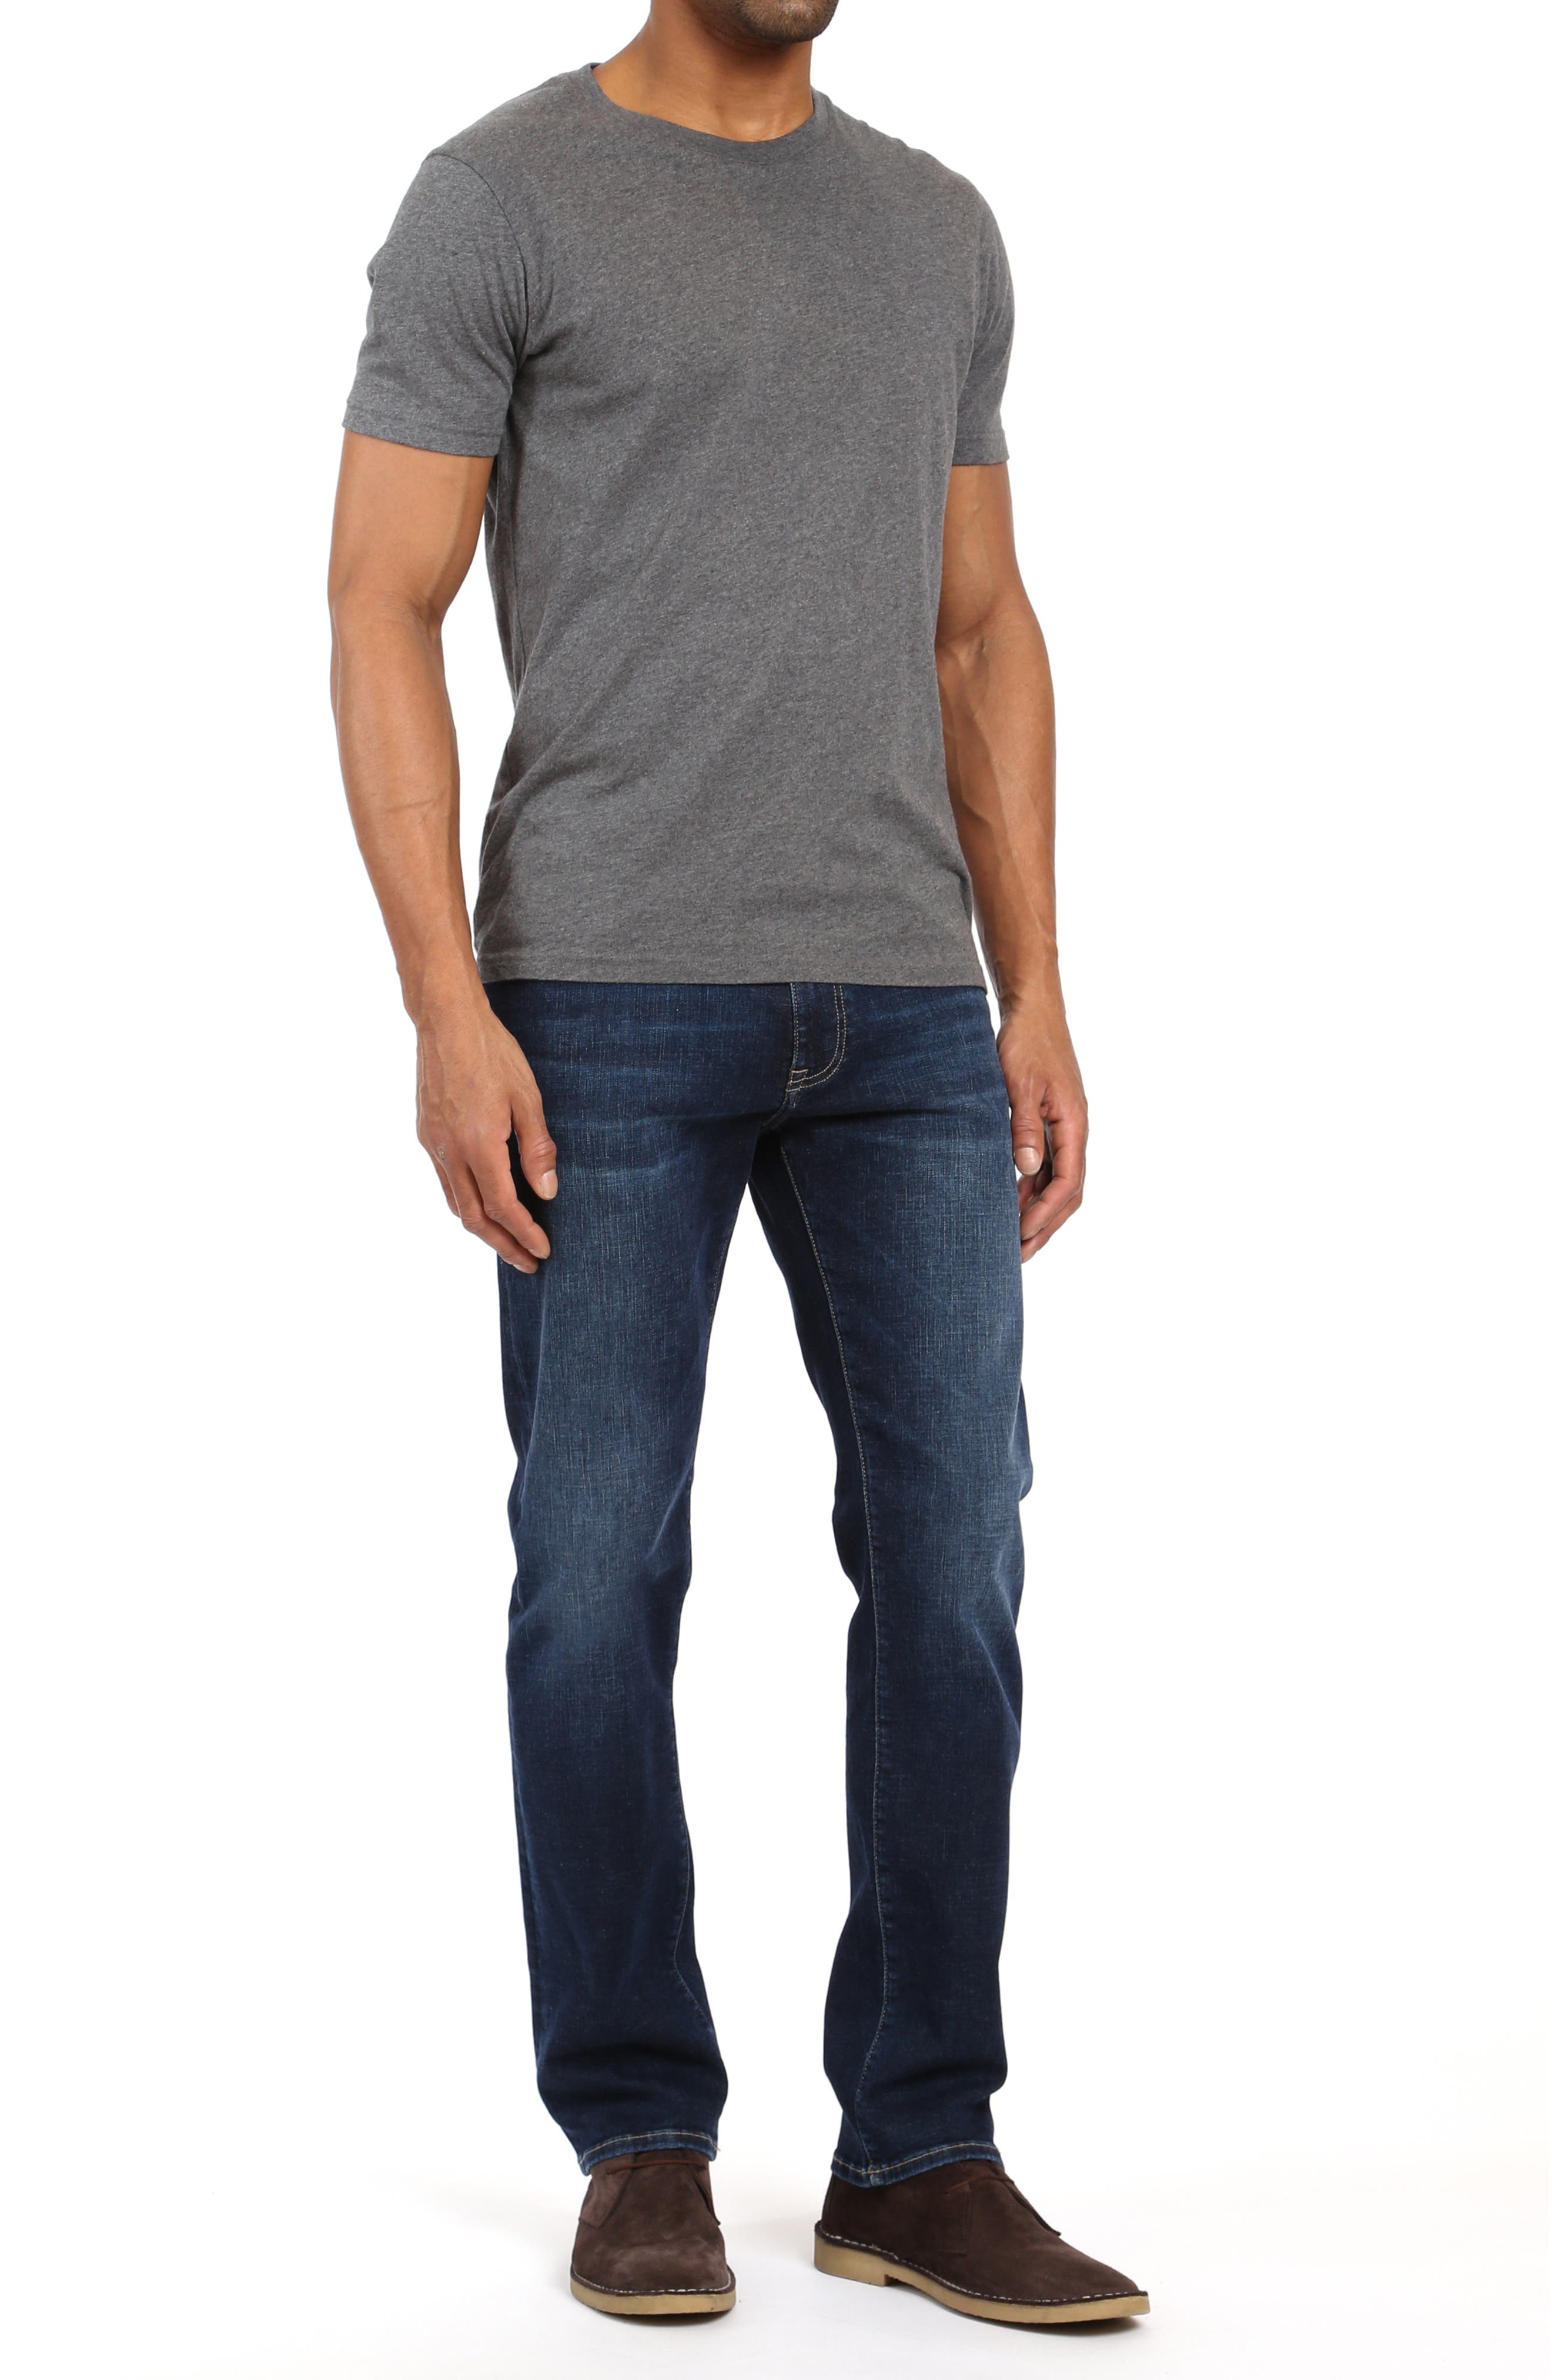 Marcus Slim Straight Leg Jeans,                             Alternate thumbnail 4, color,                             DEEP BRUSHED CASHMERE